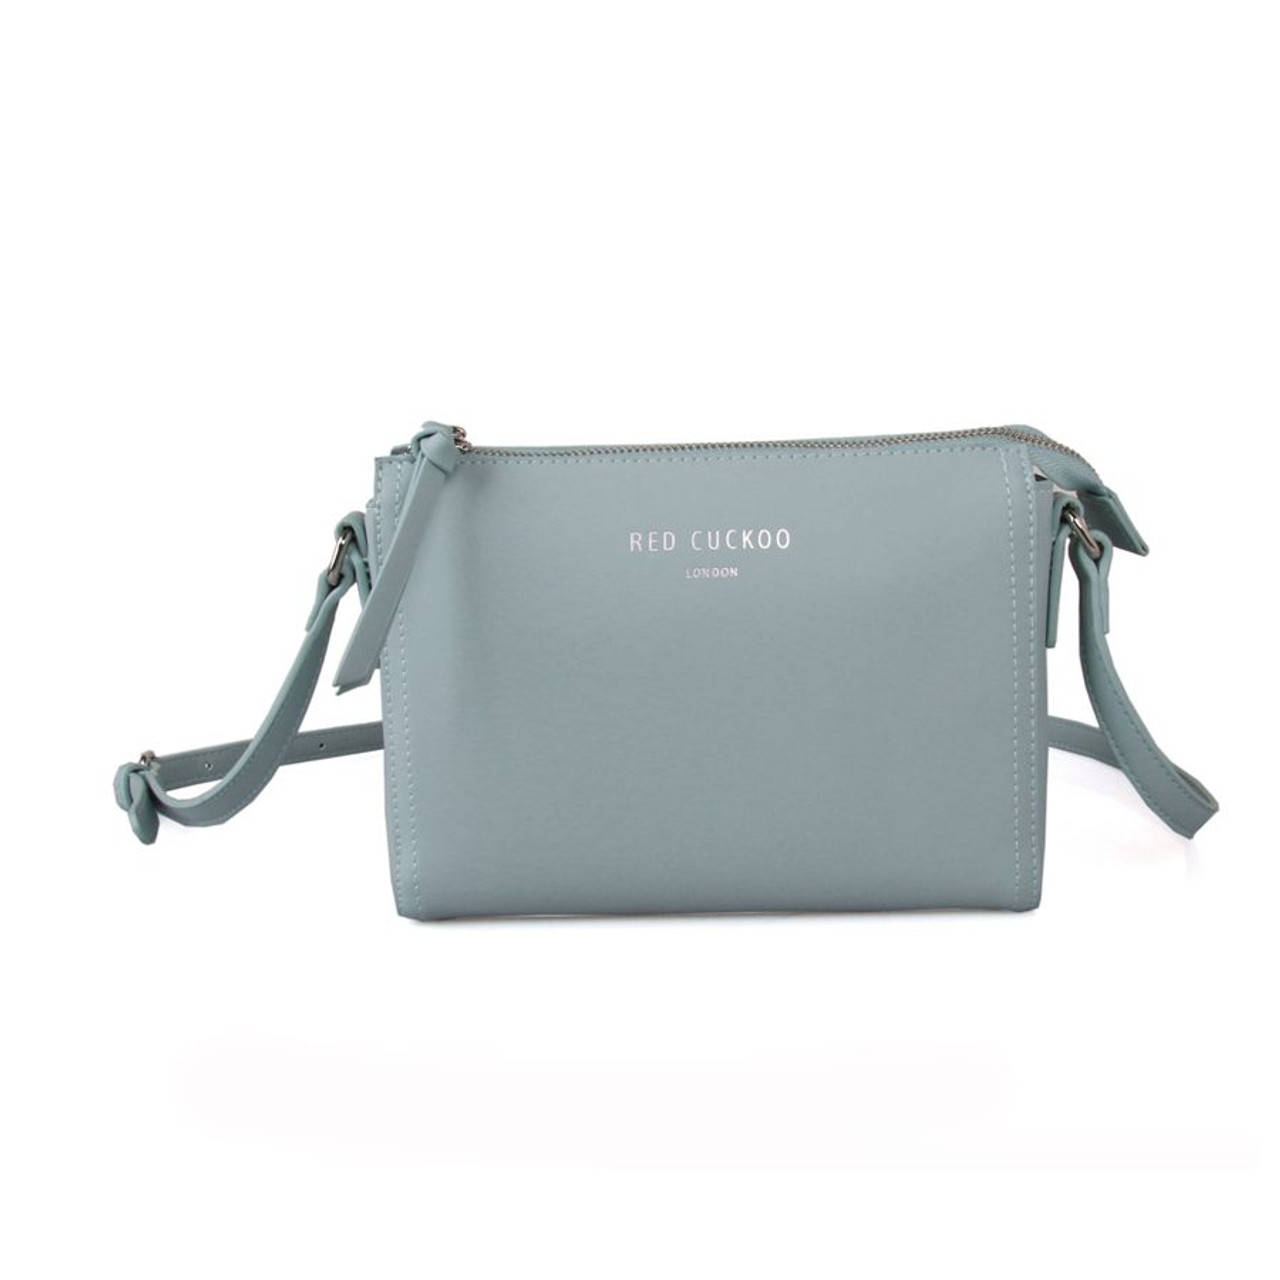 Red Cuckoo Mint Green Cross Body Bag - Itsy Bitsy Boutique 5b1625af953db